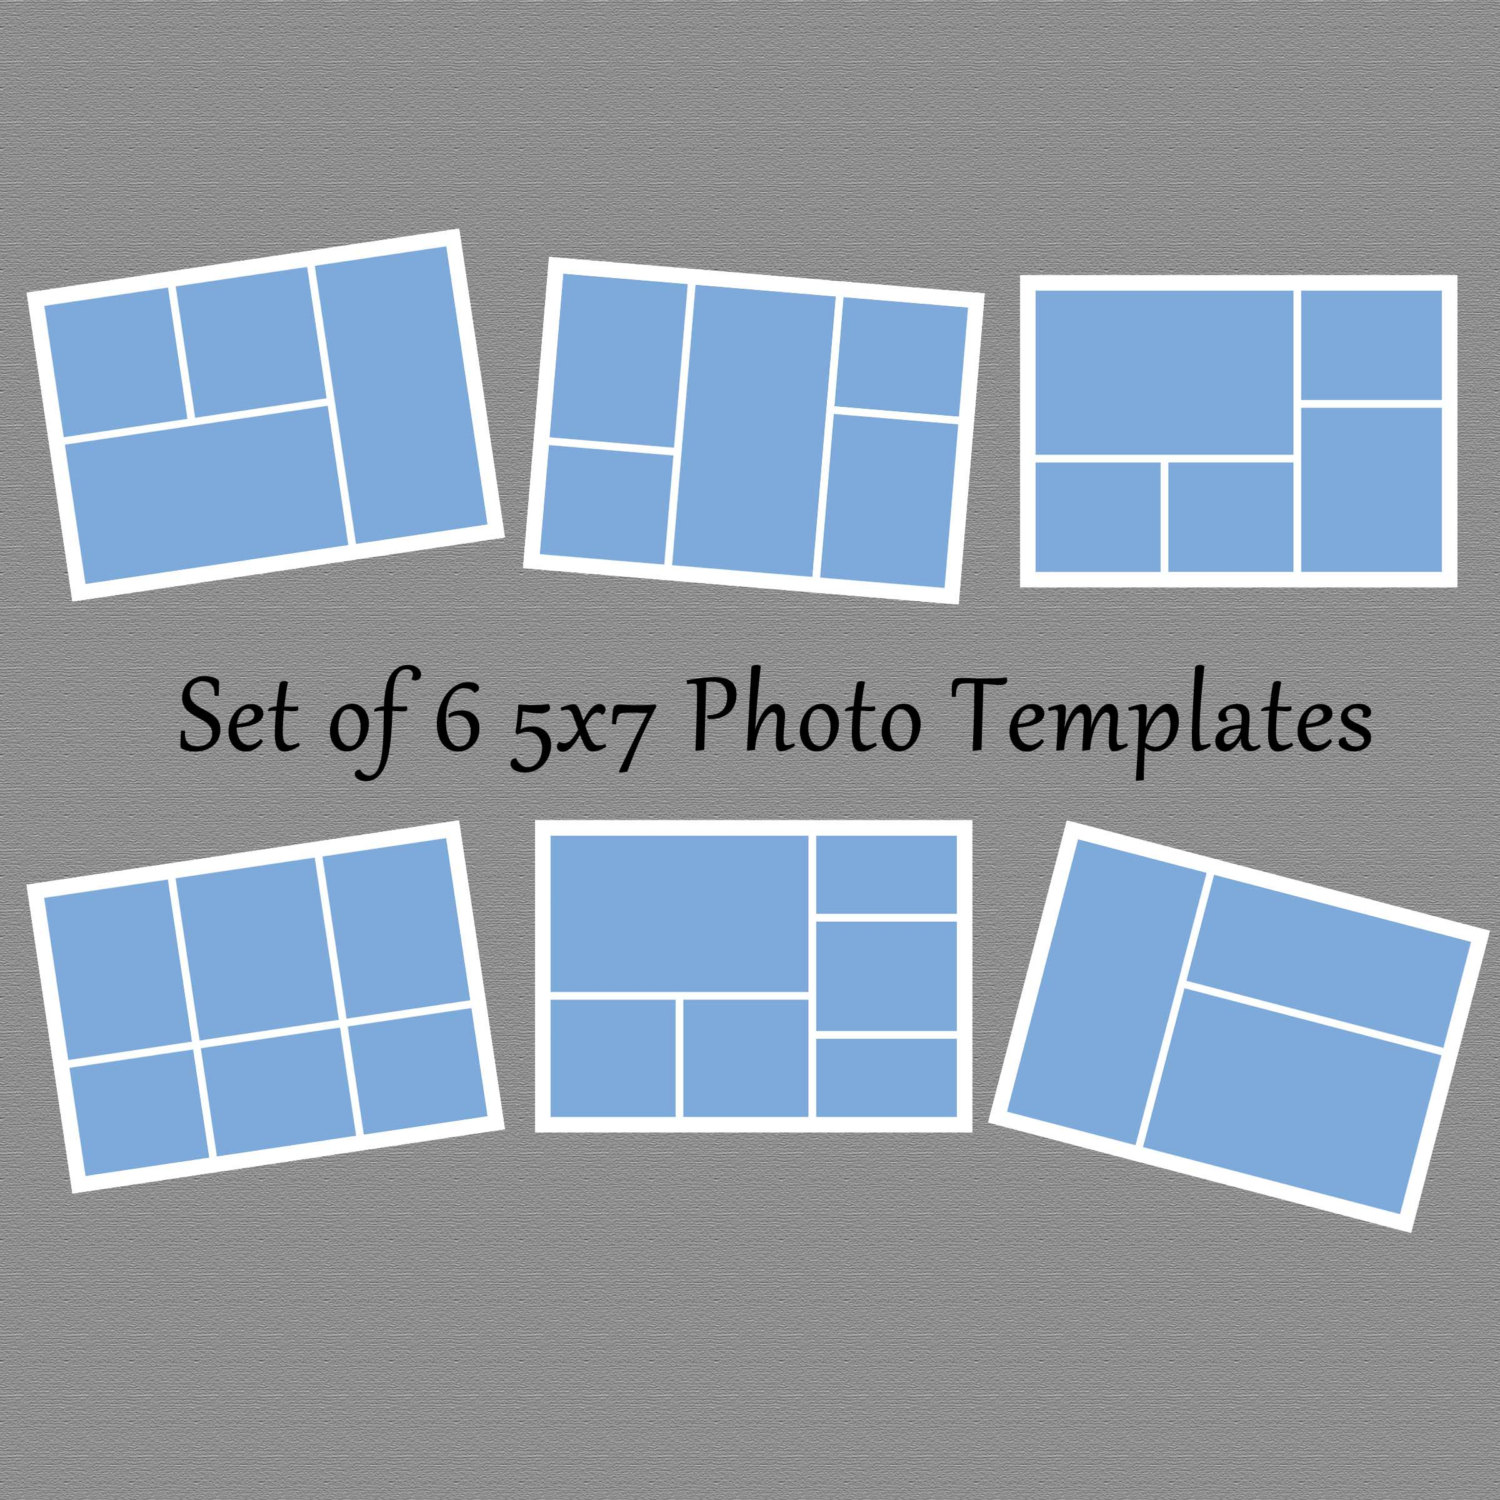 free online photo collage templates - 15 simple collage template psd images collage templates